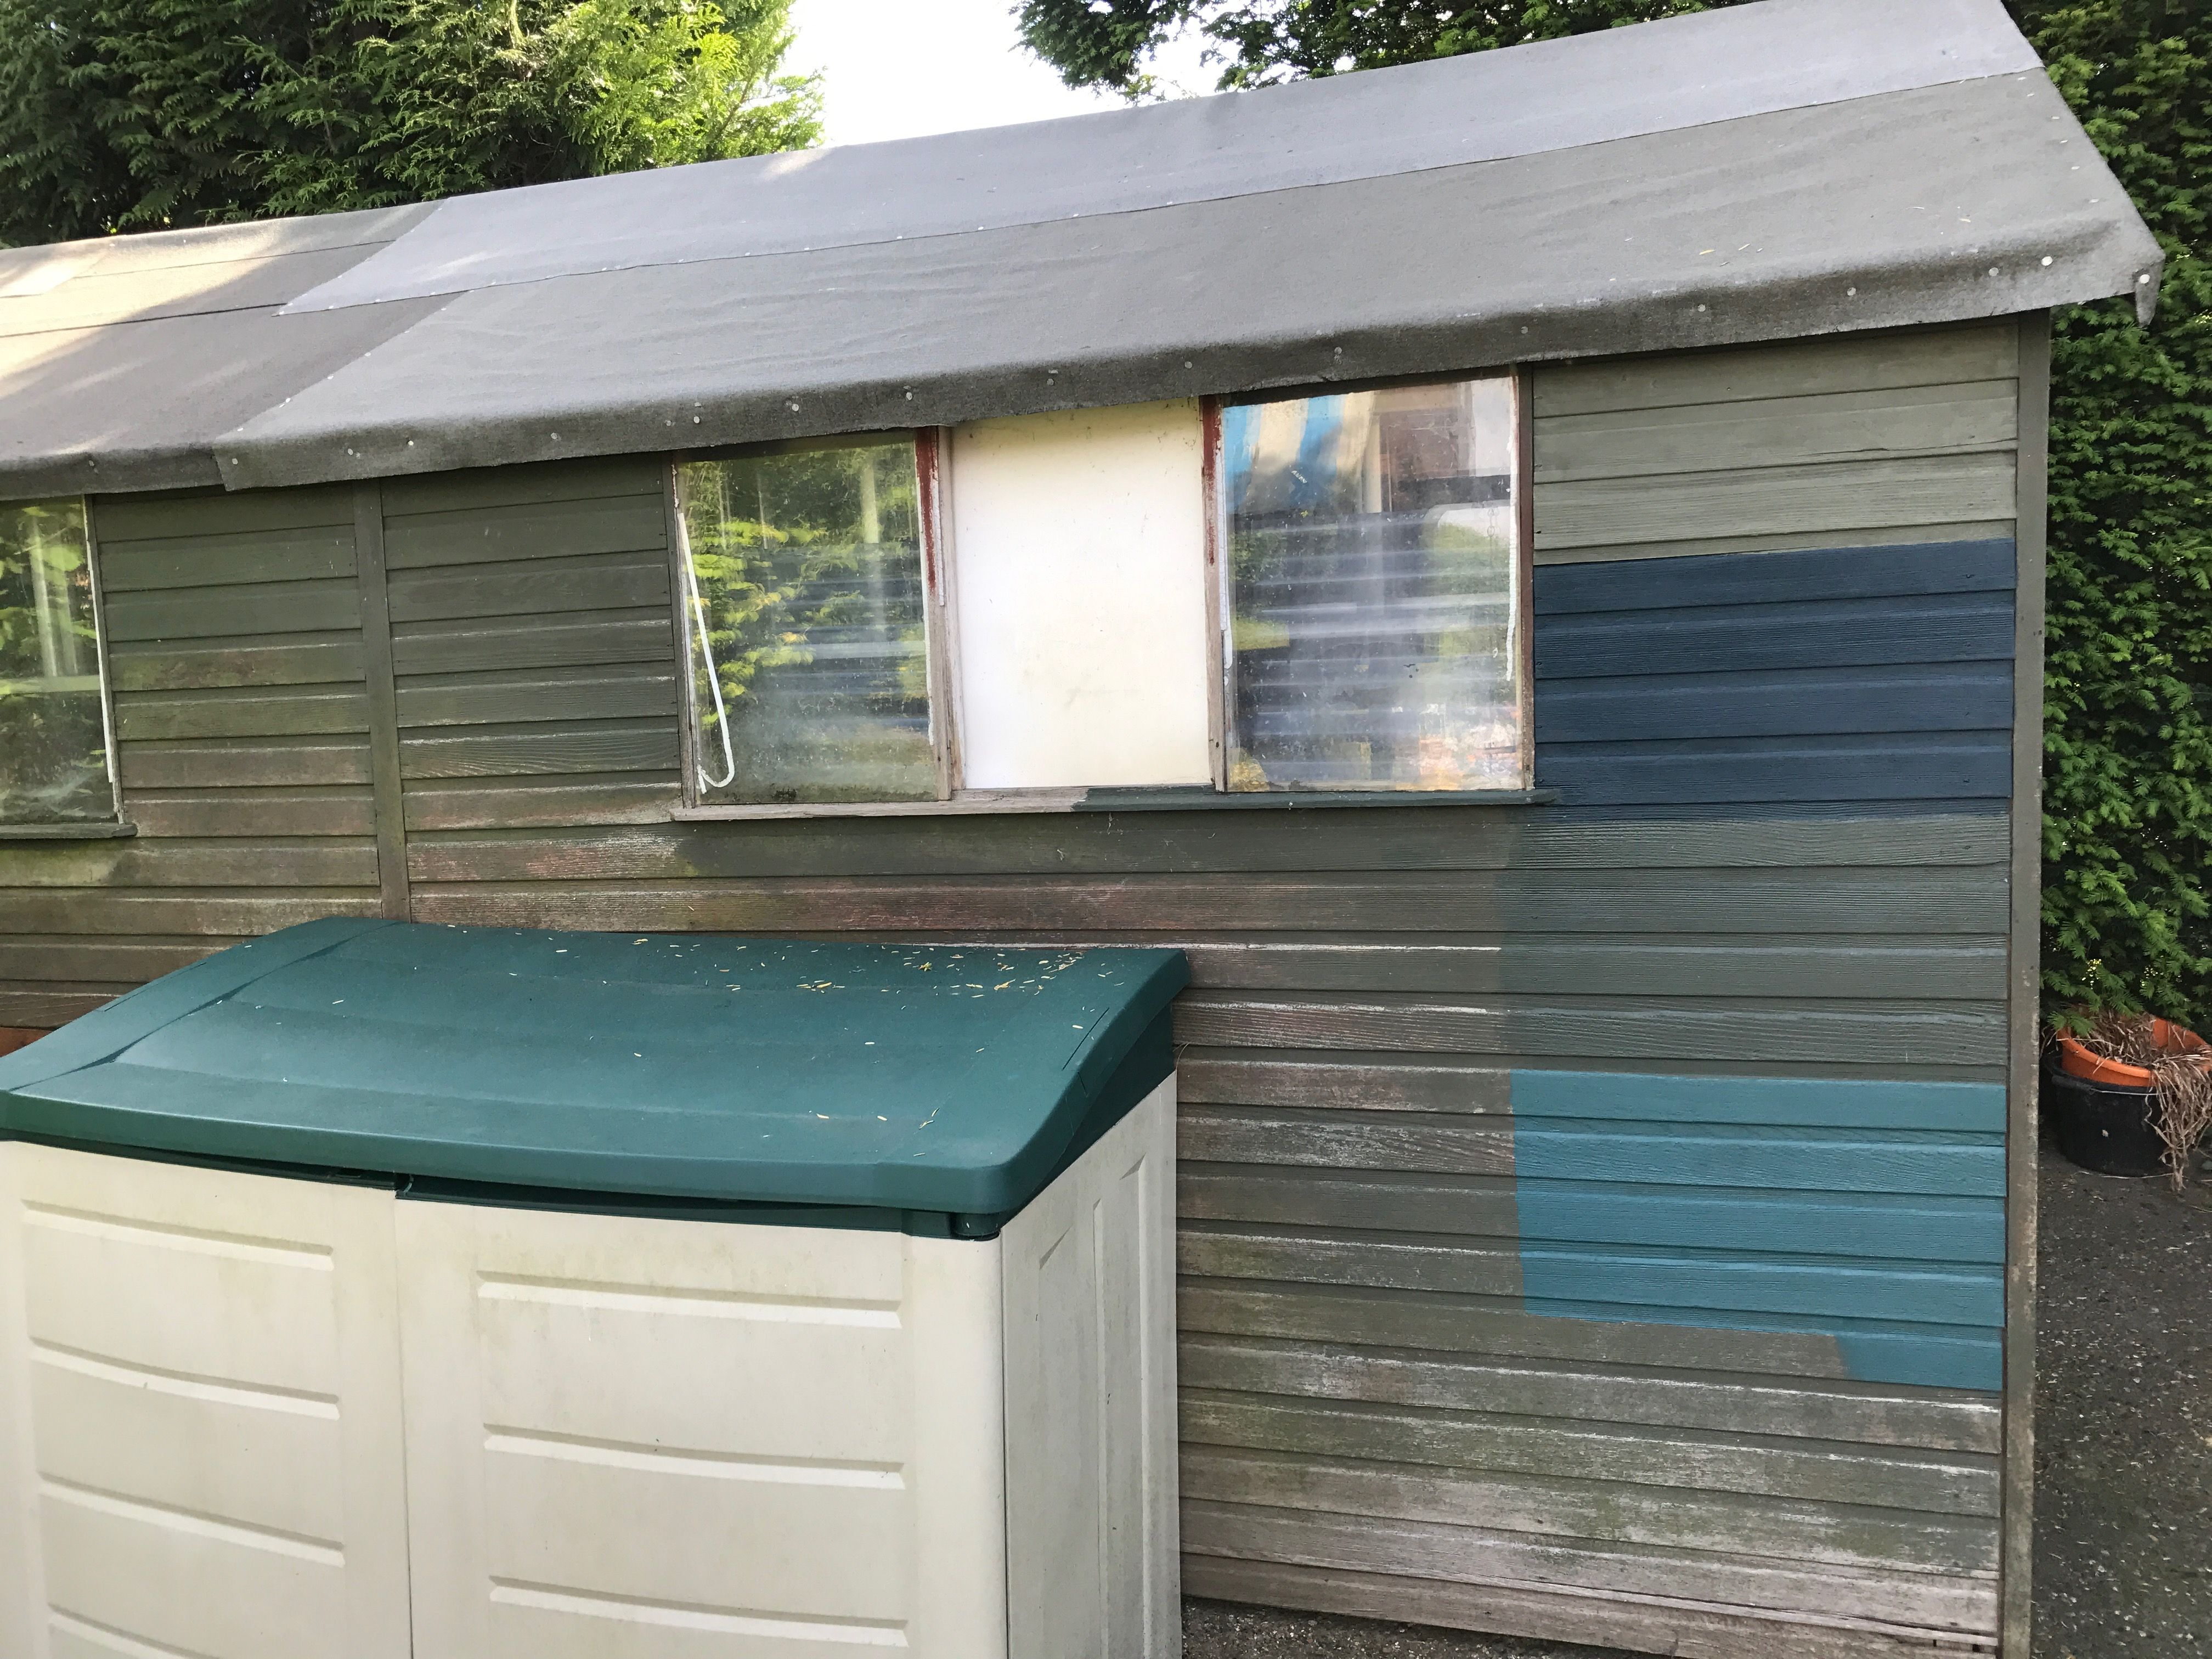 Garden Sheds Painted side of garden shed which needs a makeover - originally painted in